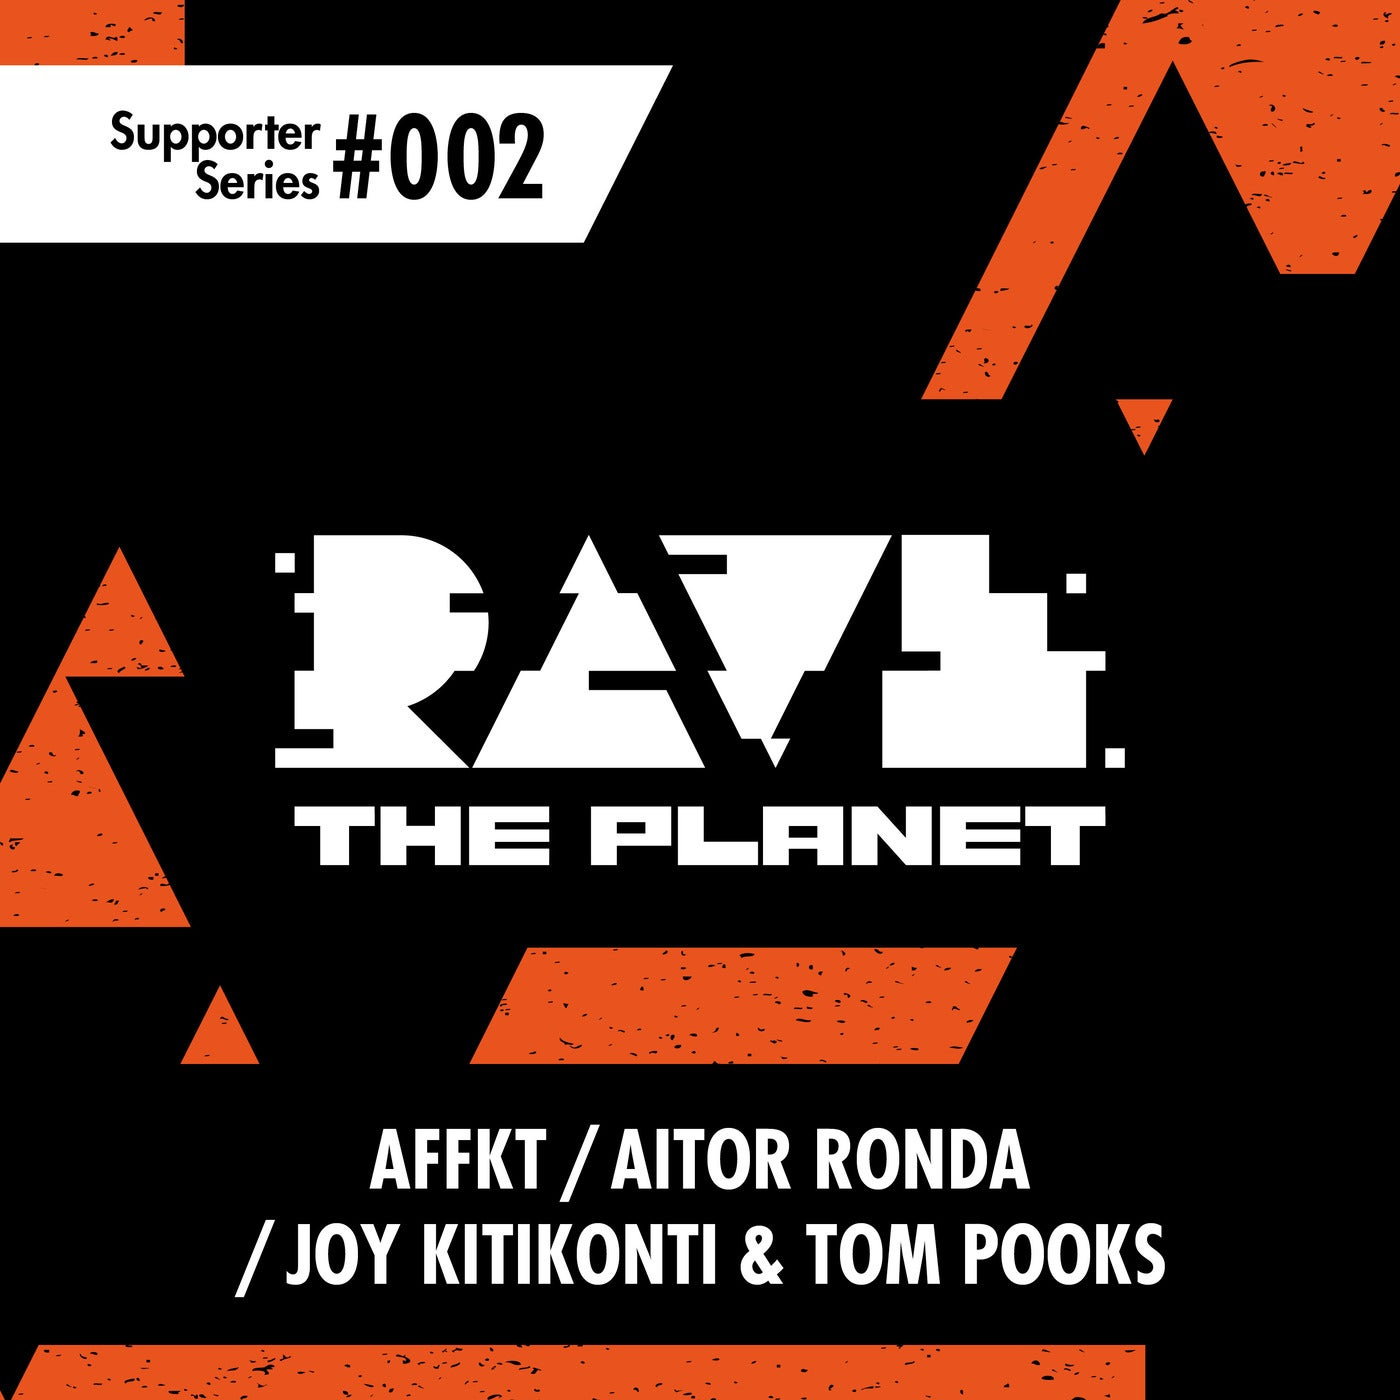 Download Rave the Planet: Supporter Series, Vol. 002 on Electrobuzz